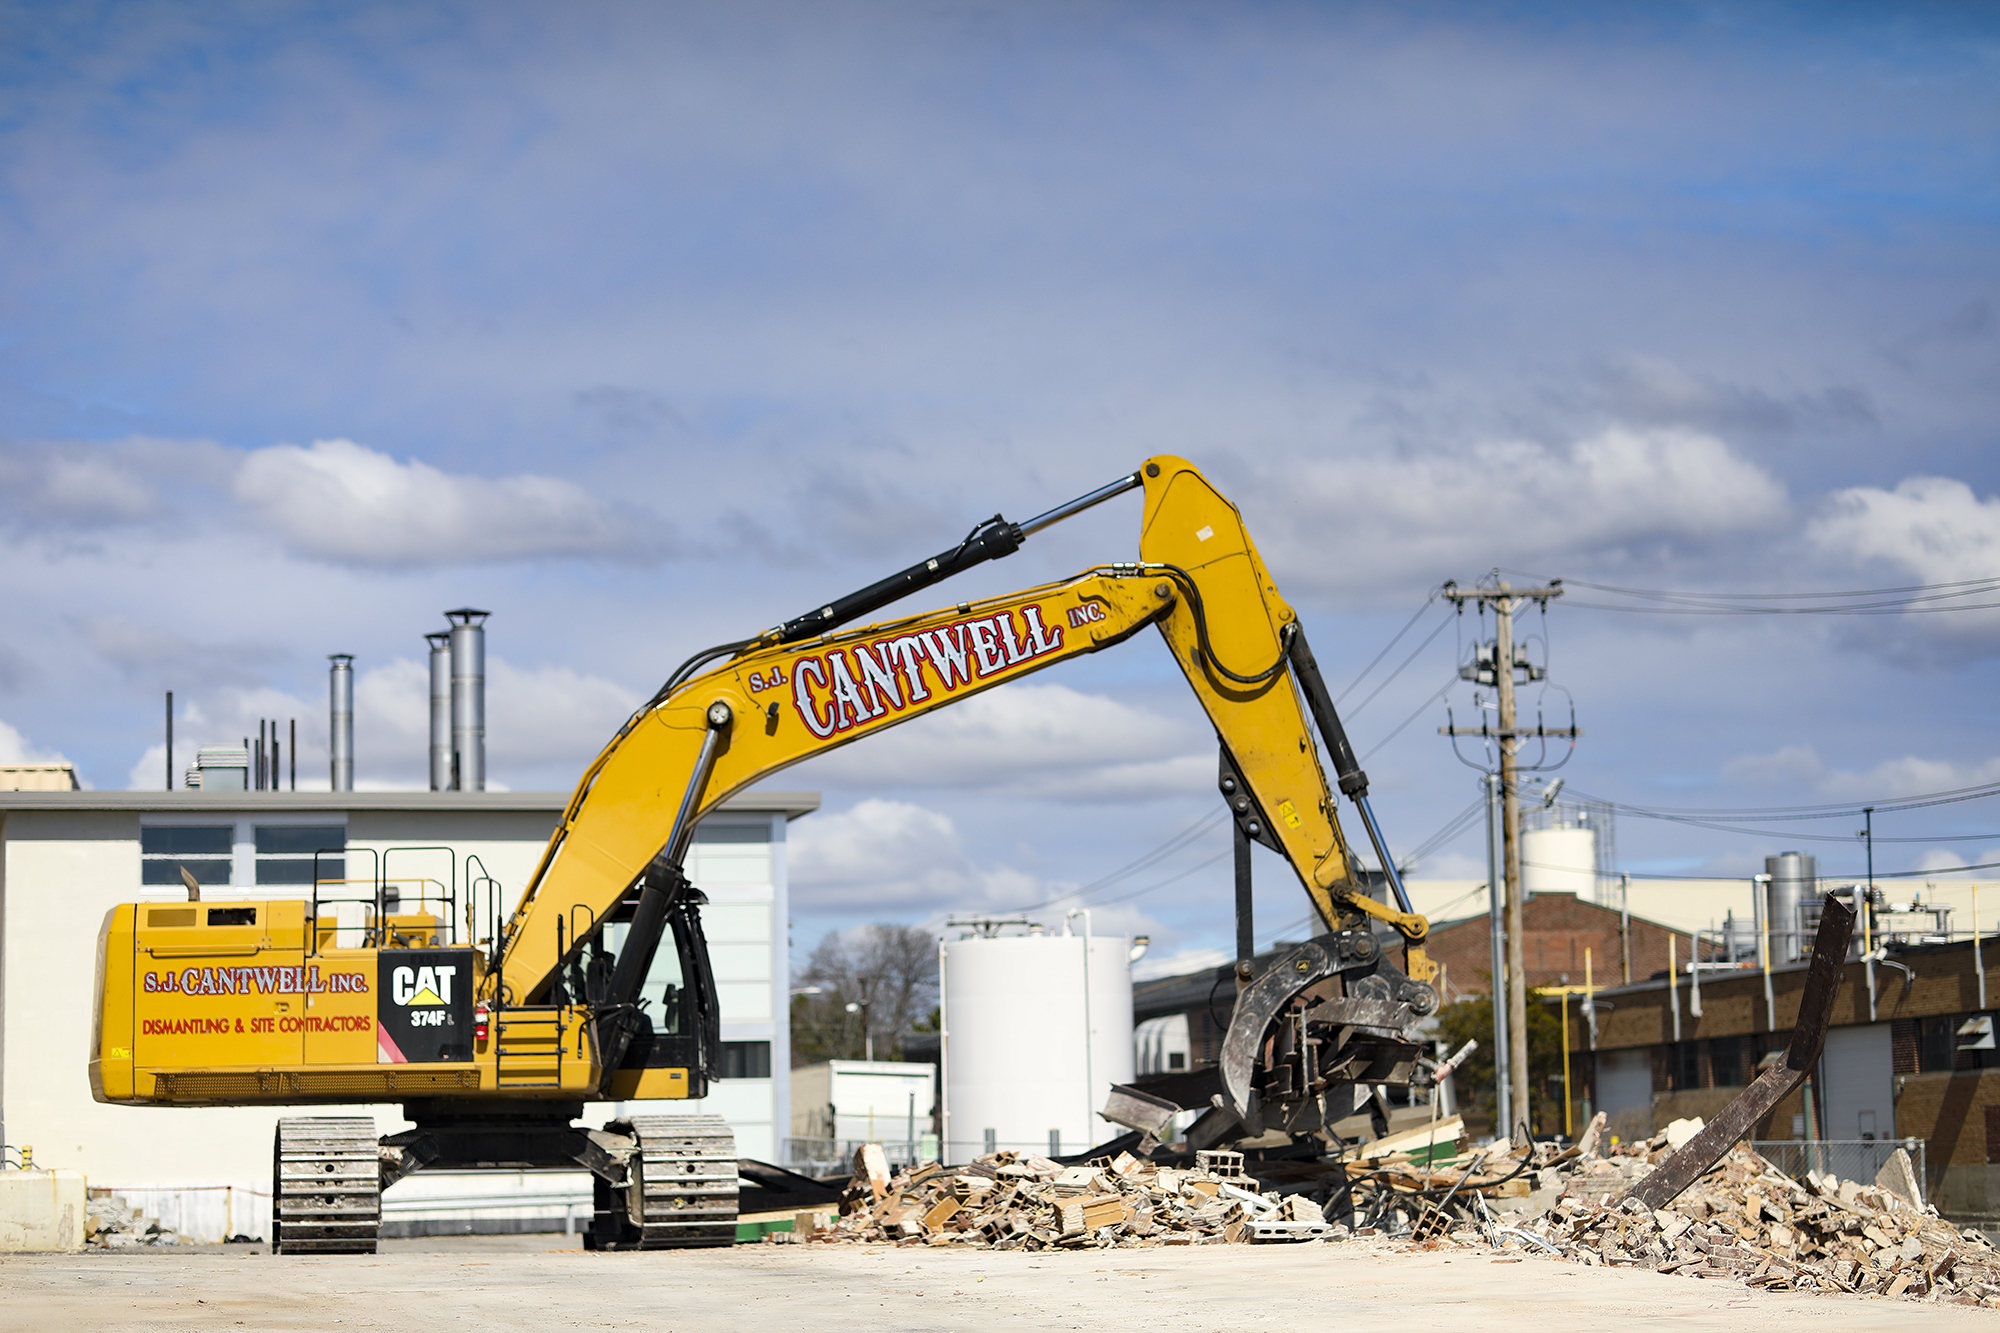 A photo of a large excavator with demolition claw attachment gathering metal for recycling